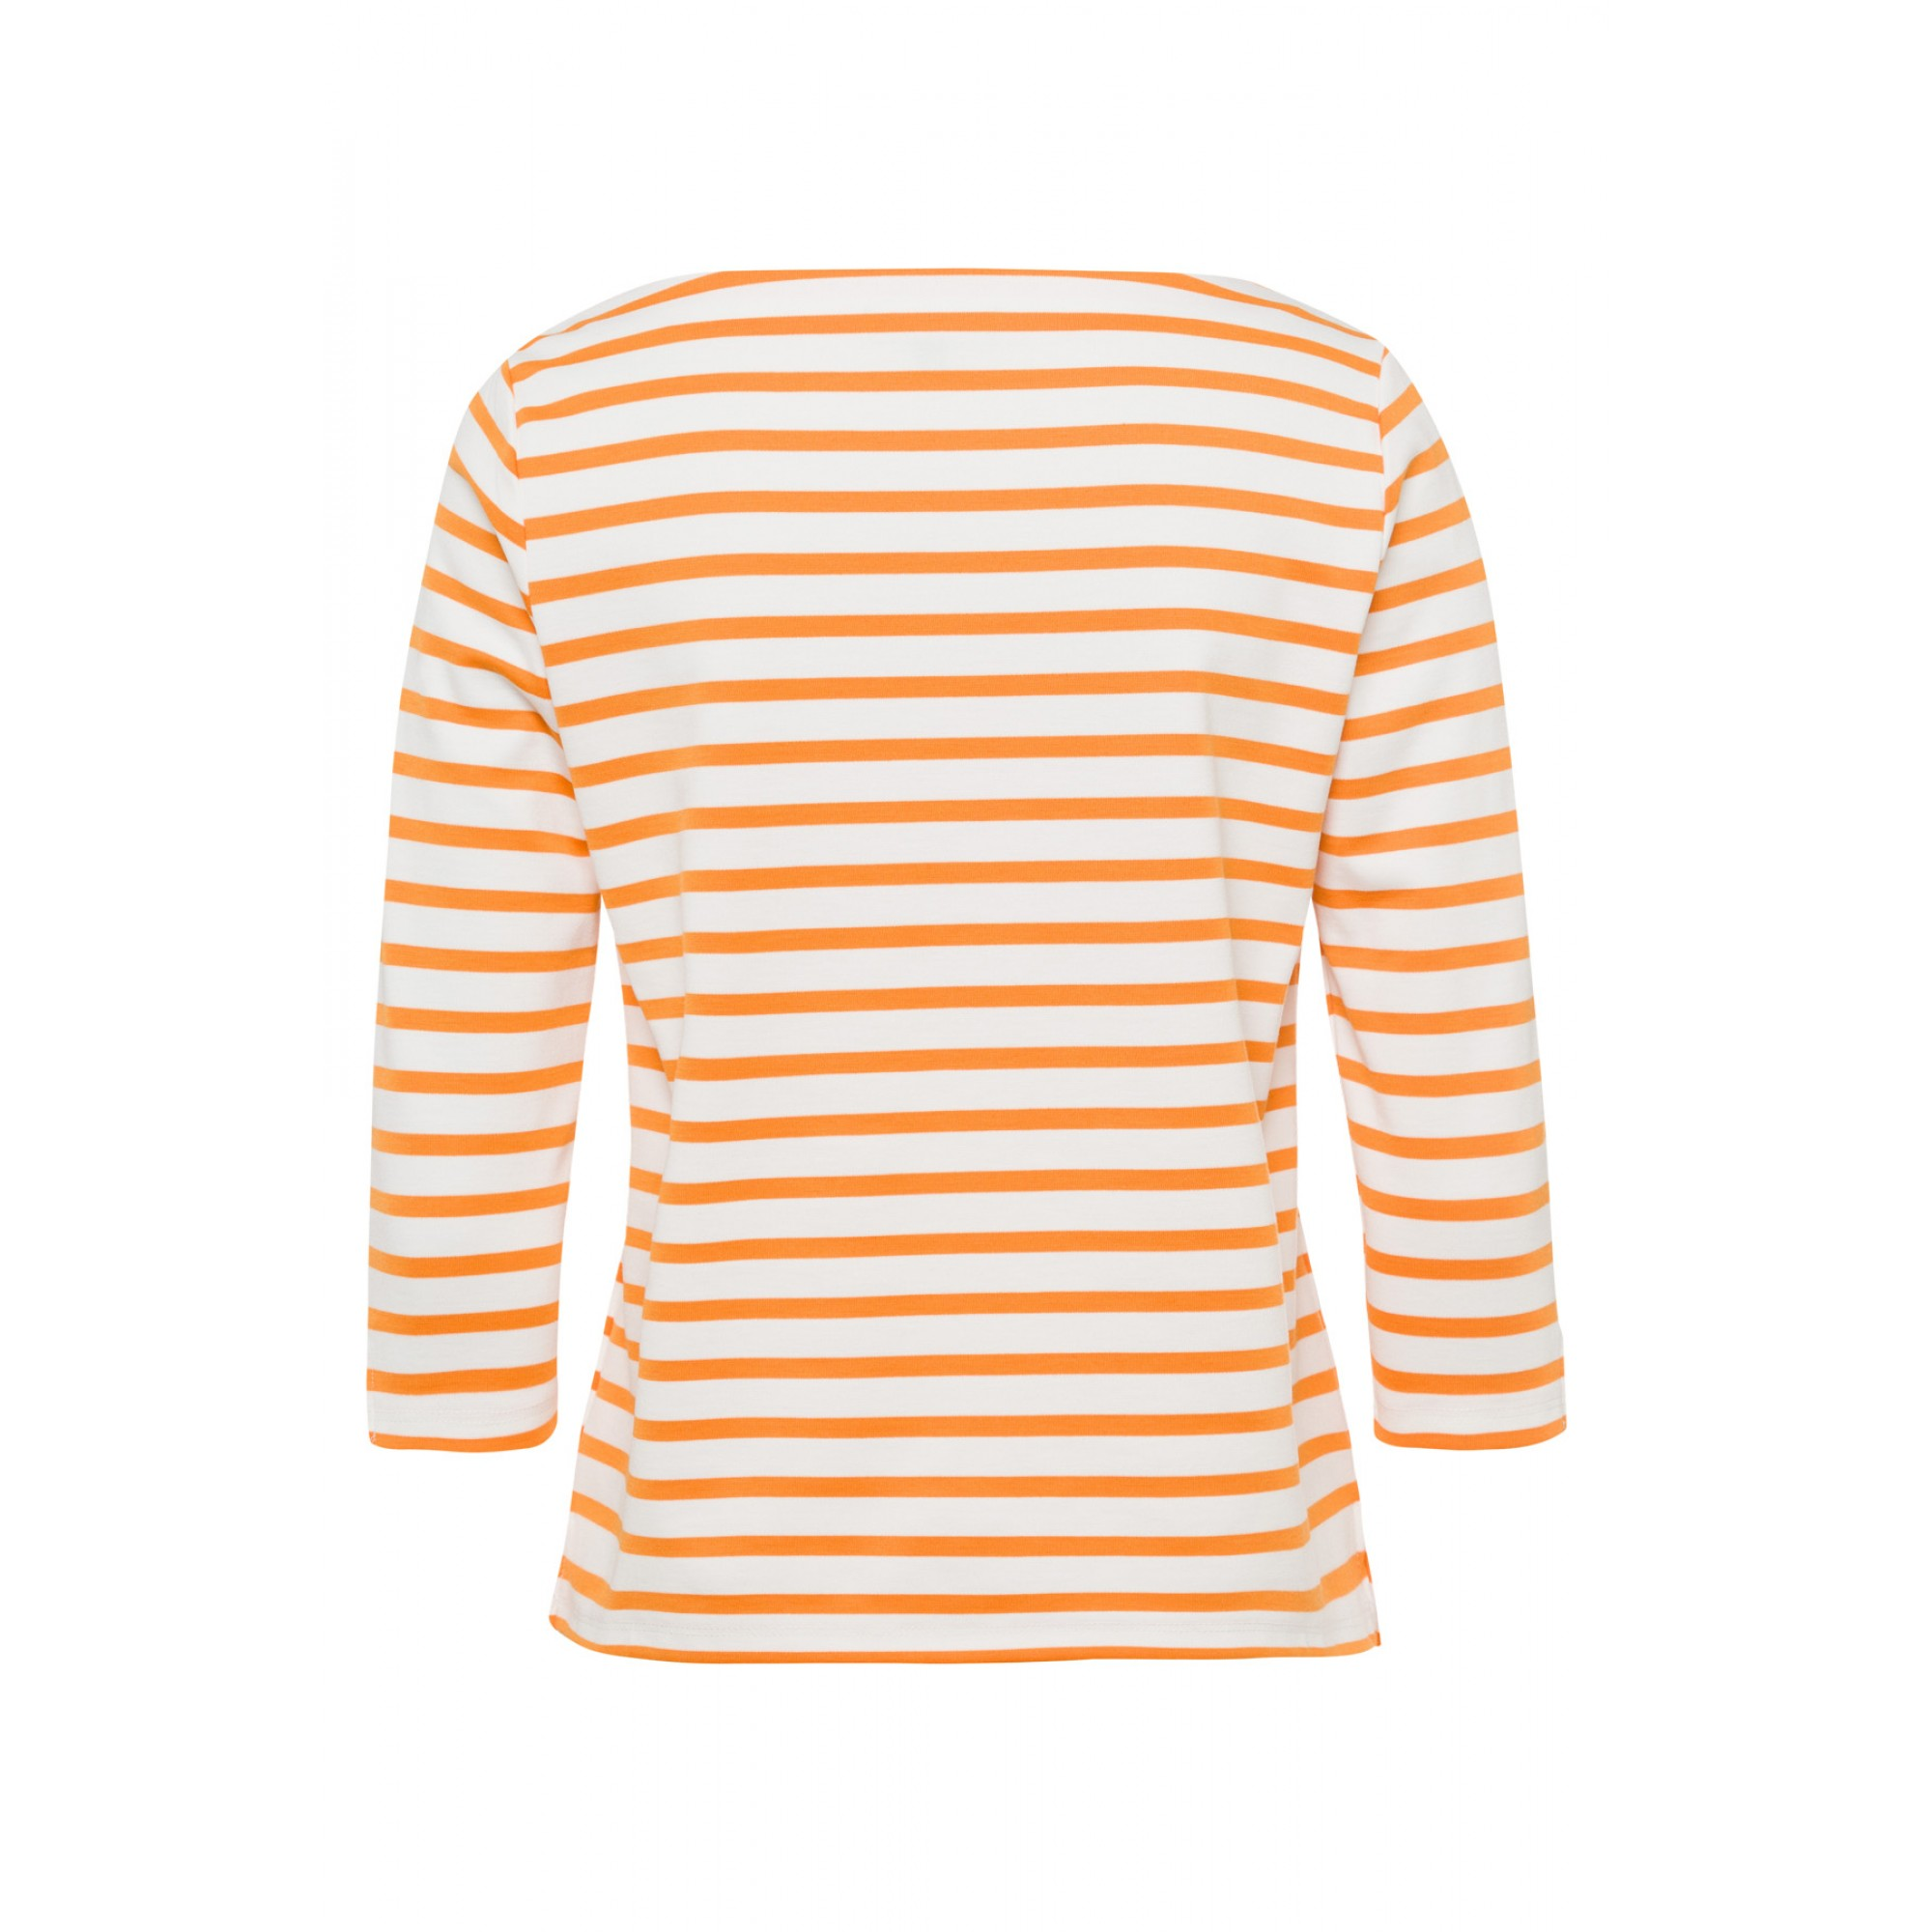 Ringelshirt, orange/ecru 01960064-2420 2